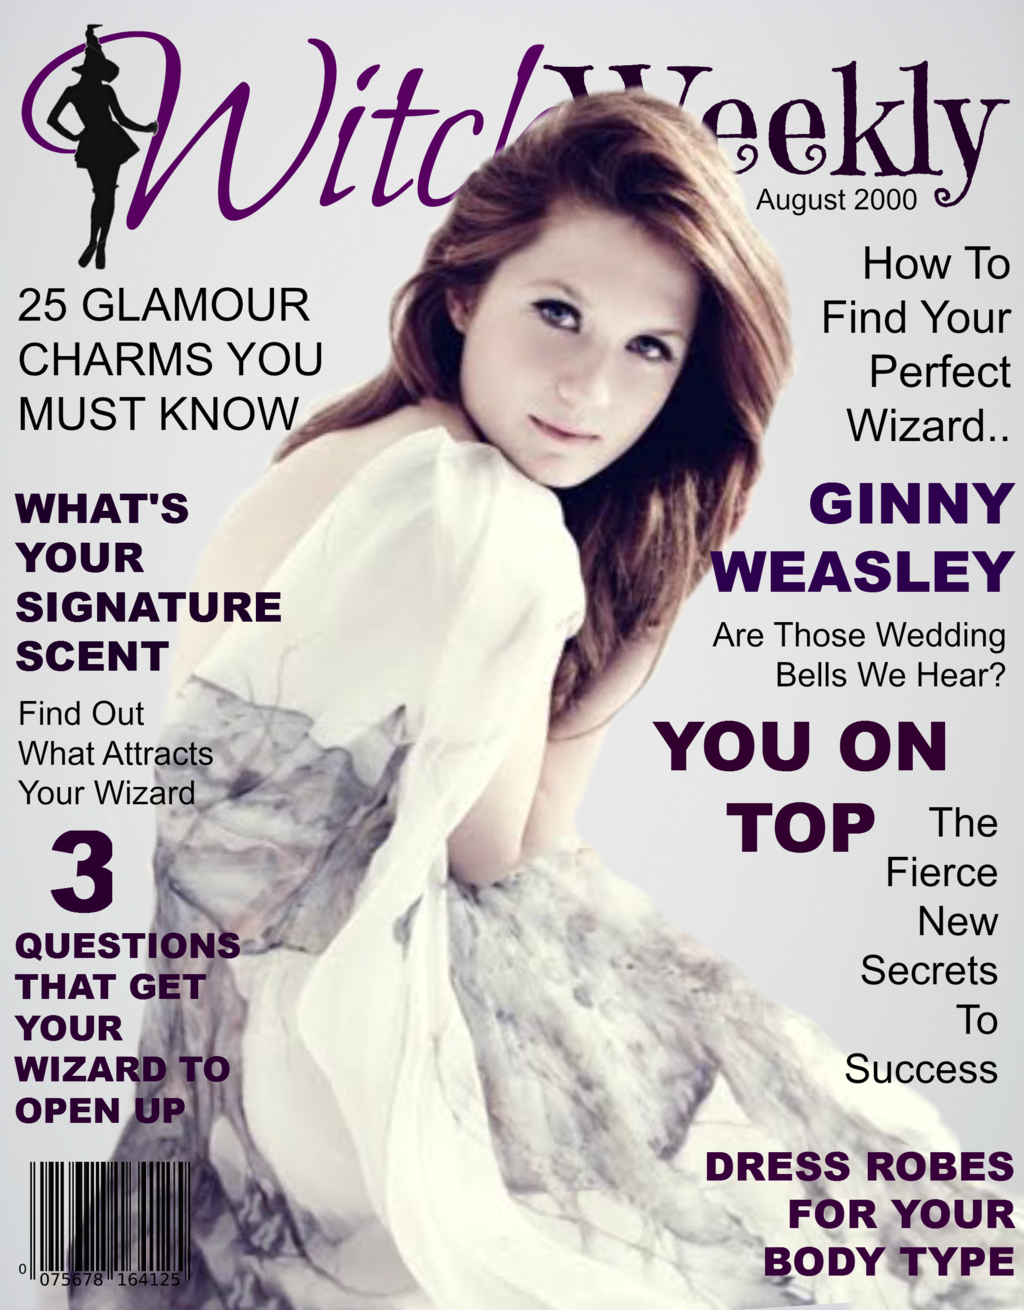 Fan-made Harry Potter 'Witch Weekly' magazine cover